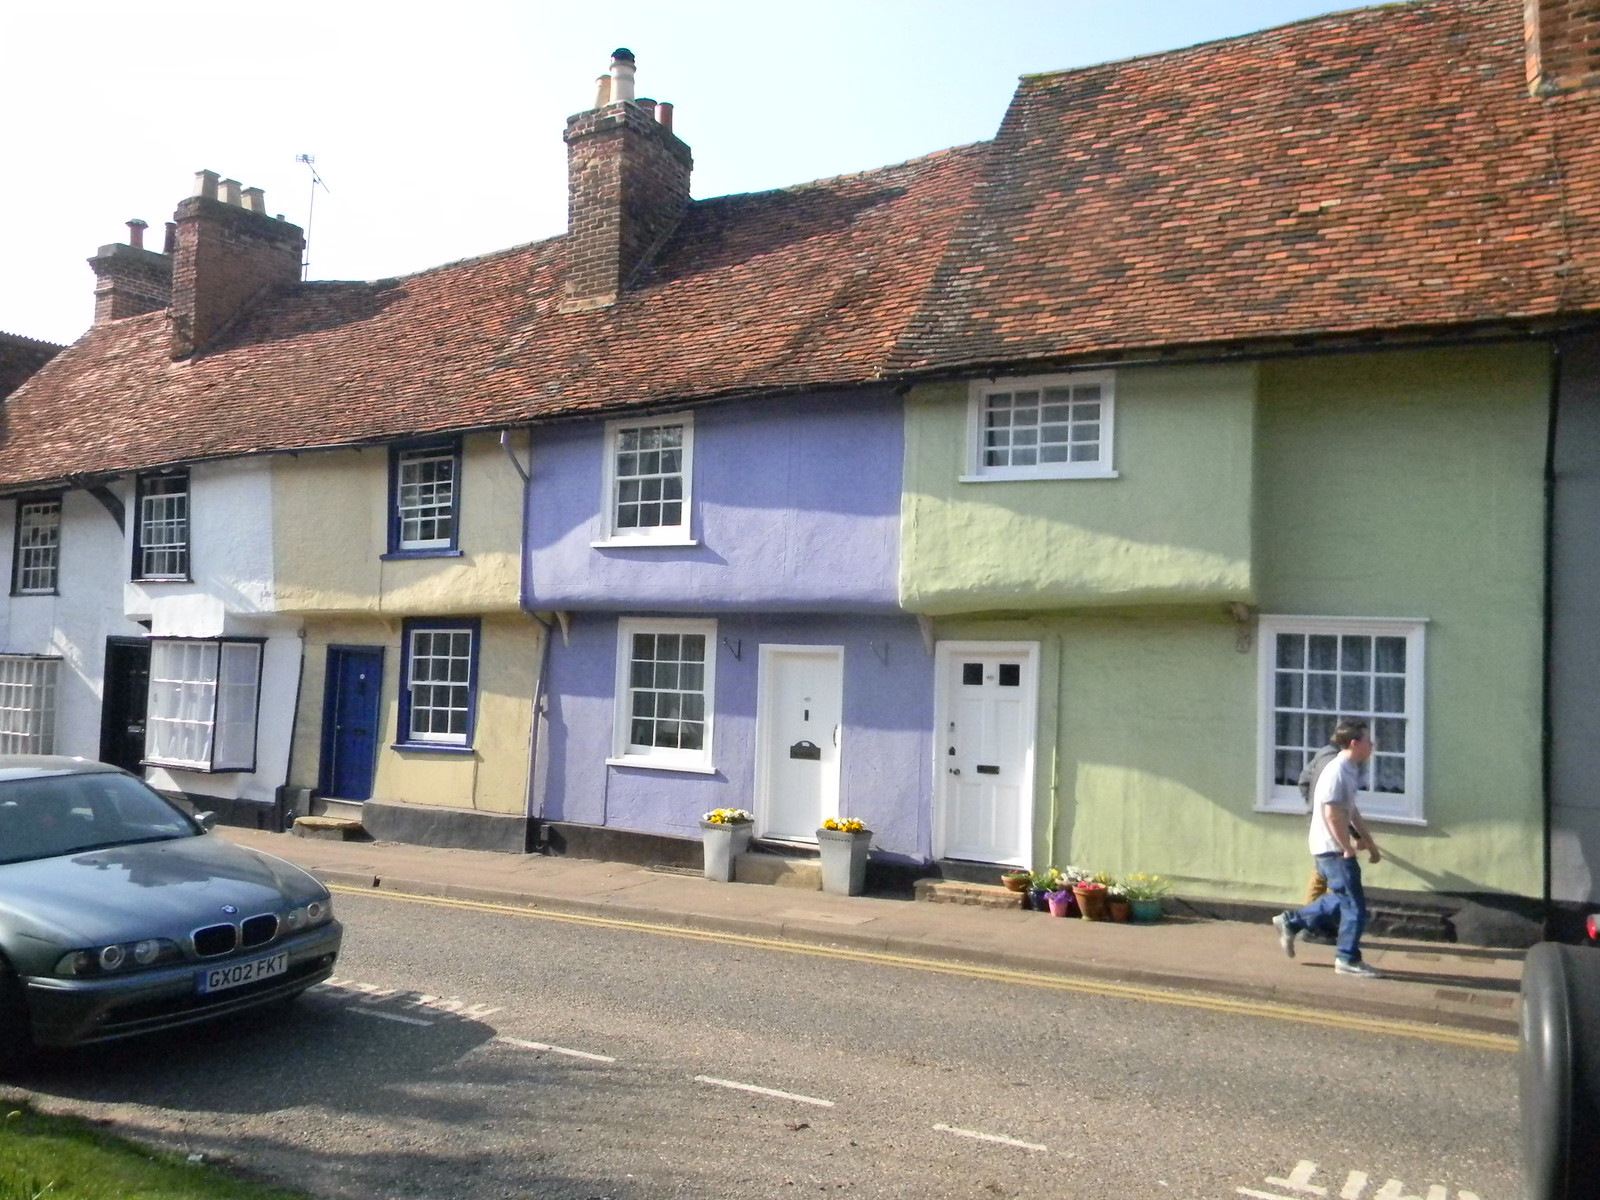 Pastel pargeted cottages Saffron Walden Great Chesterford to Newport